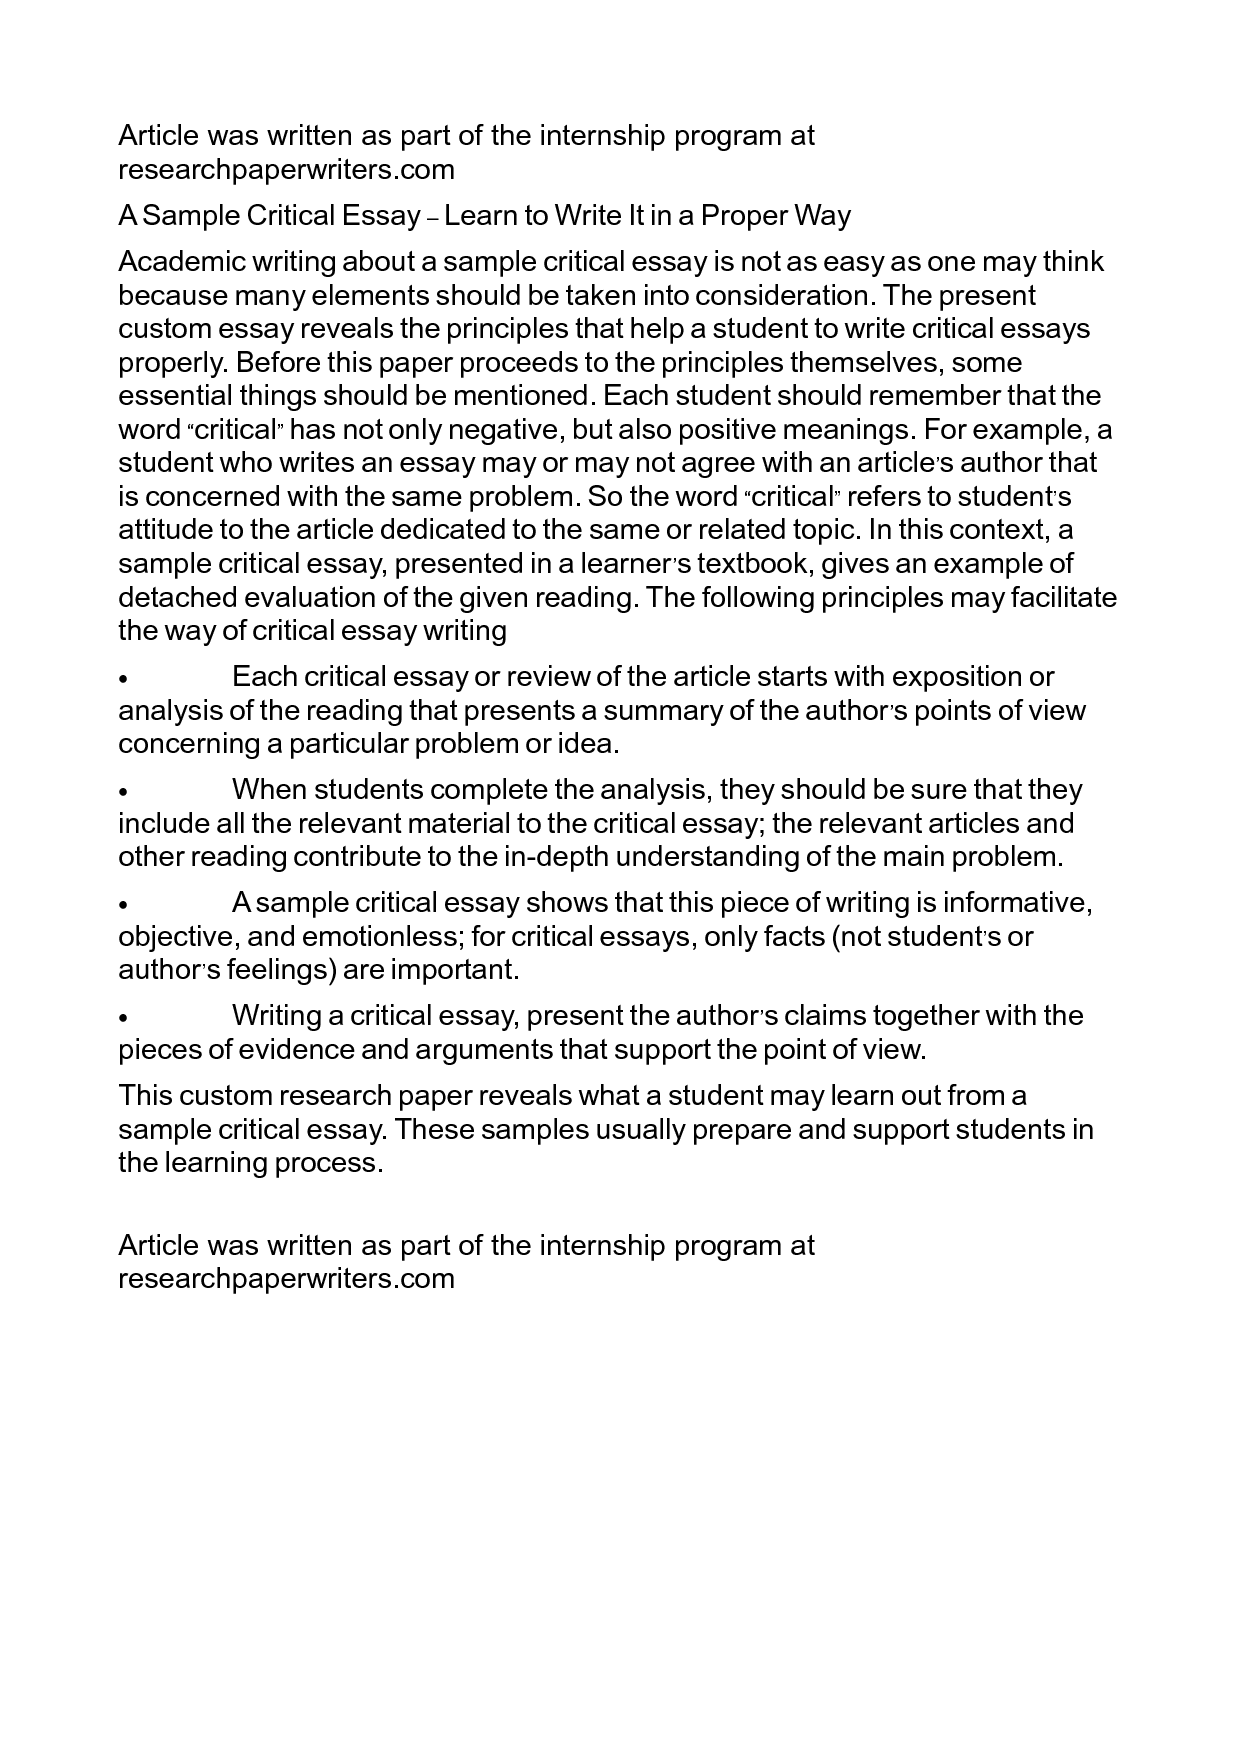 006 Essay Example How To Write Proper Frightening A Good Format Successful Introduction Full